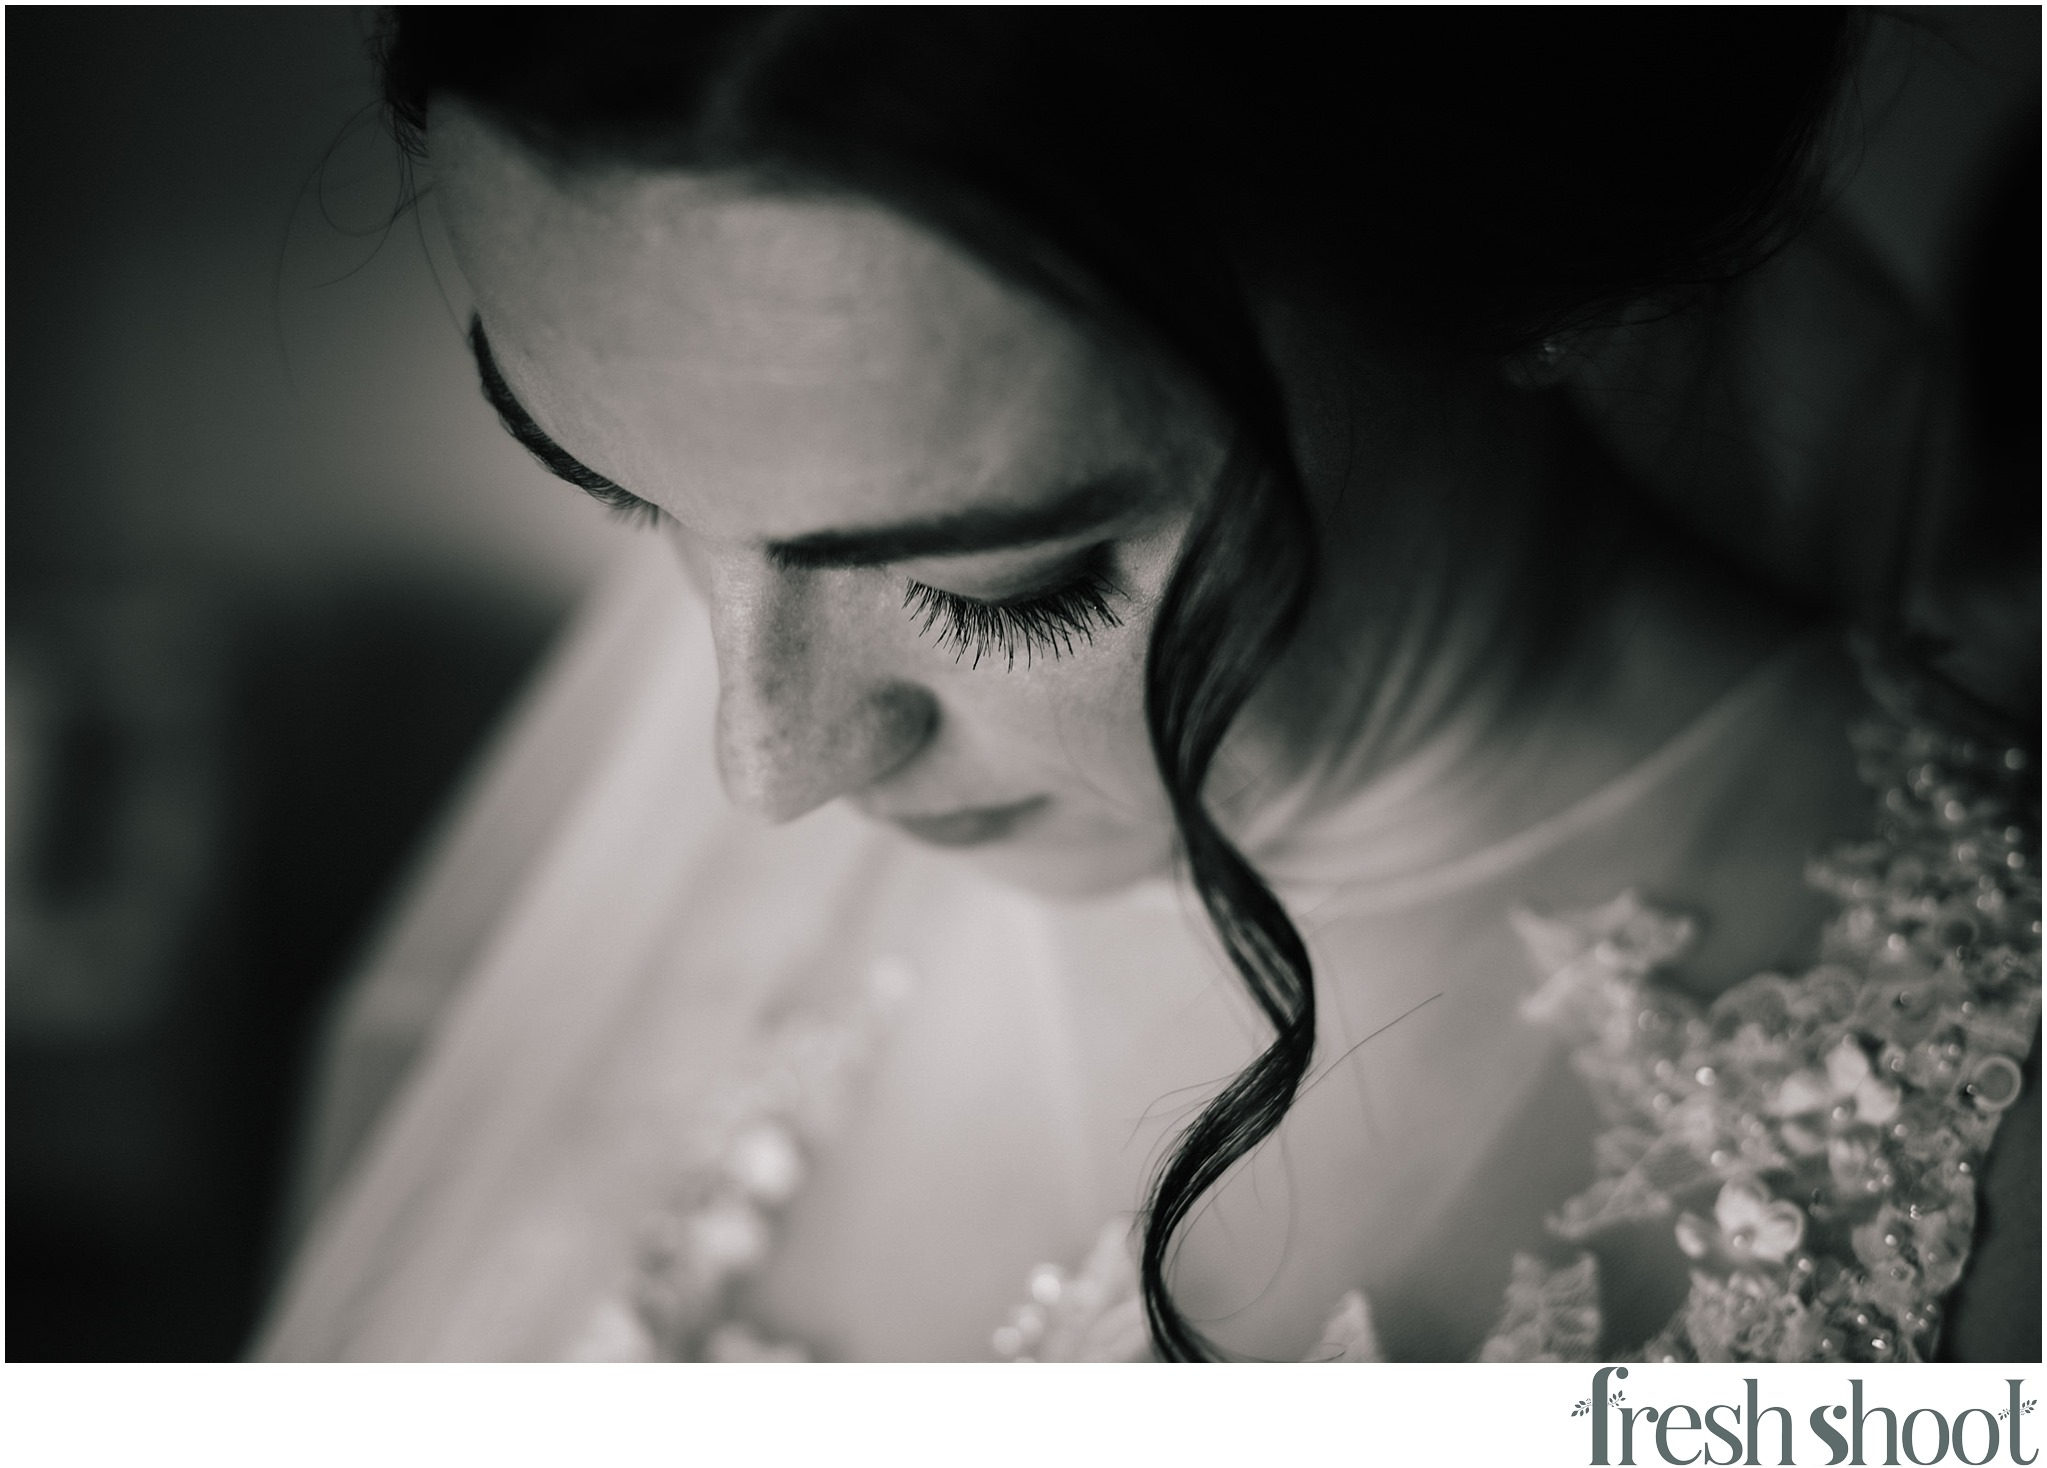 eyelash shot of bridal makeup